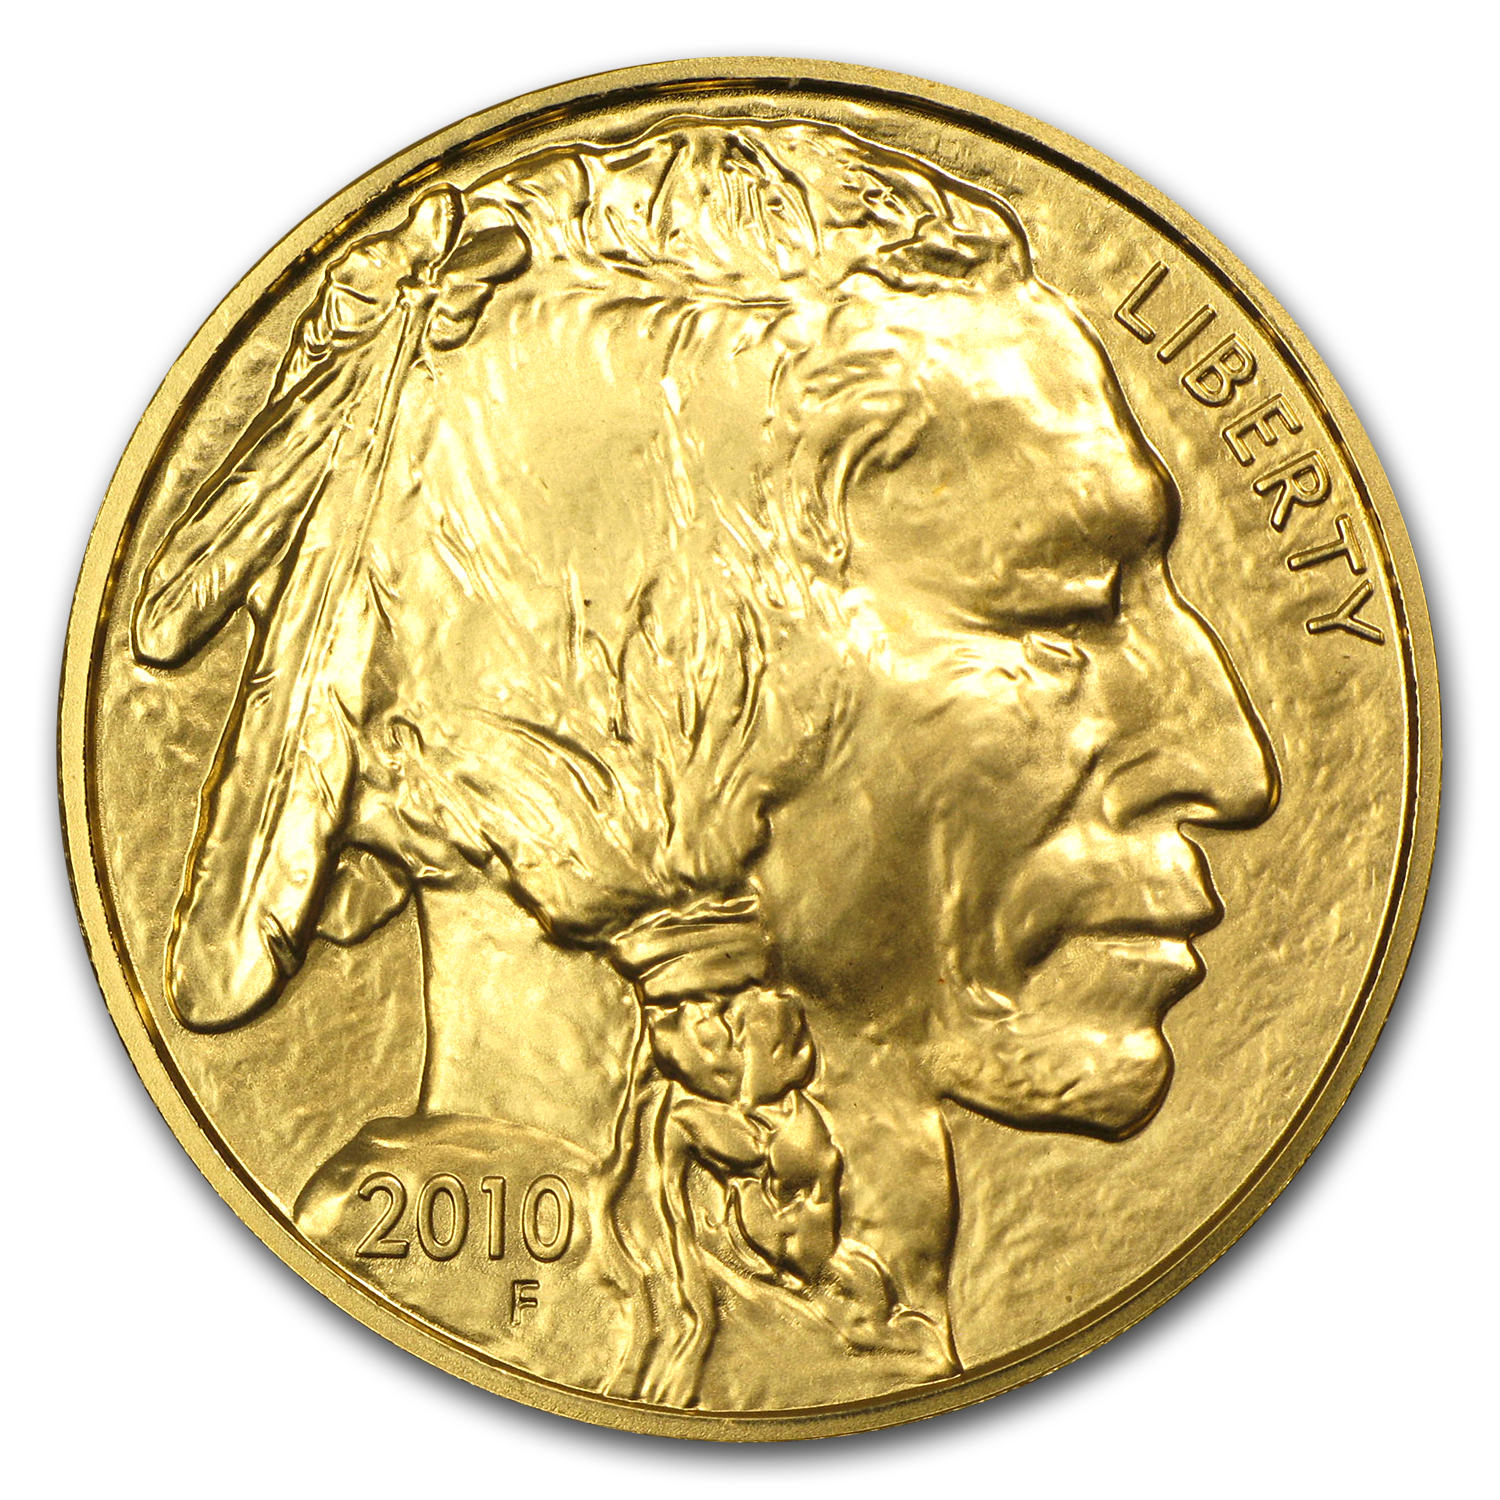 2010 1 oz Gold Buffalo BU